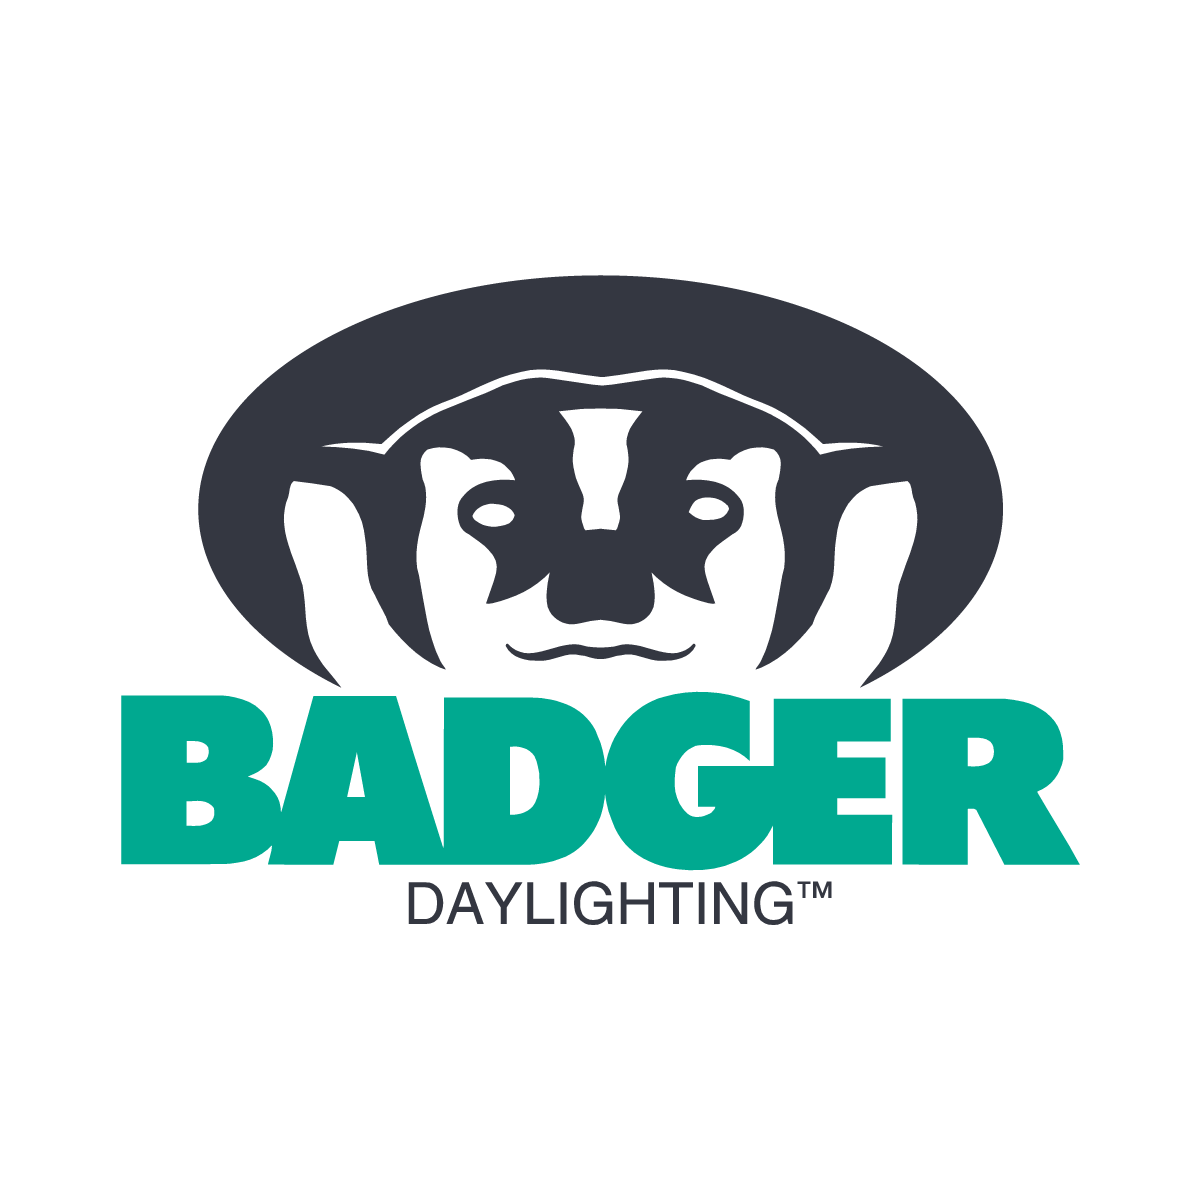 Badger Daylighting™ - Hydrovac Excavation Company In Canada & The USA - Vacuum Truck